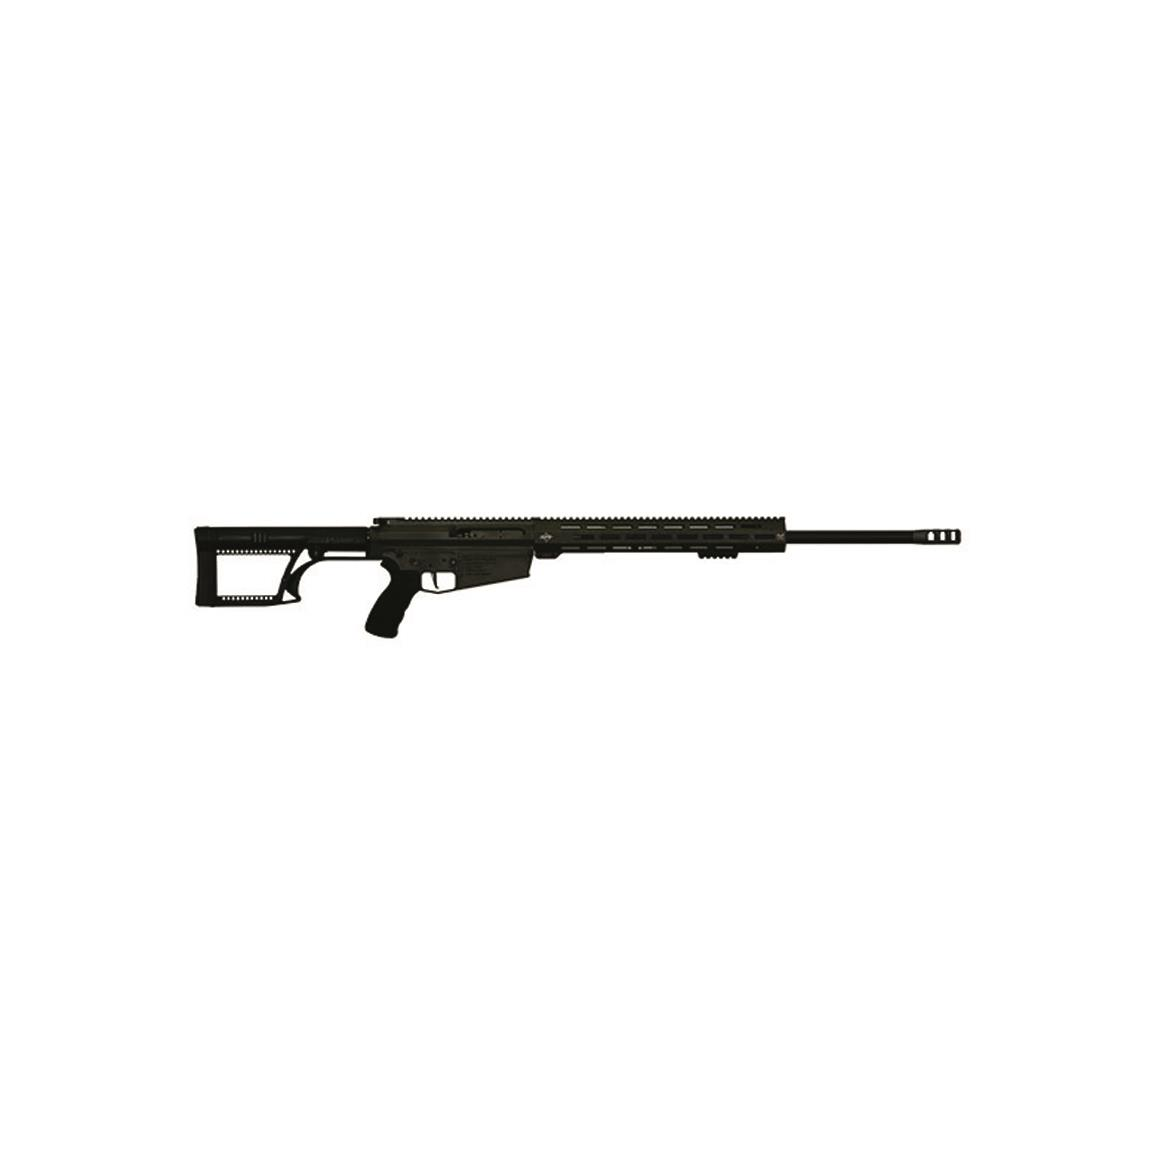 "APF MLR AR-10, Semi-Automatic, .300 Win. Mag., 22"" Stainless Barrel, 5+1 Rounds"